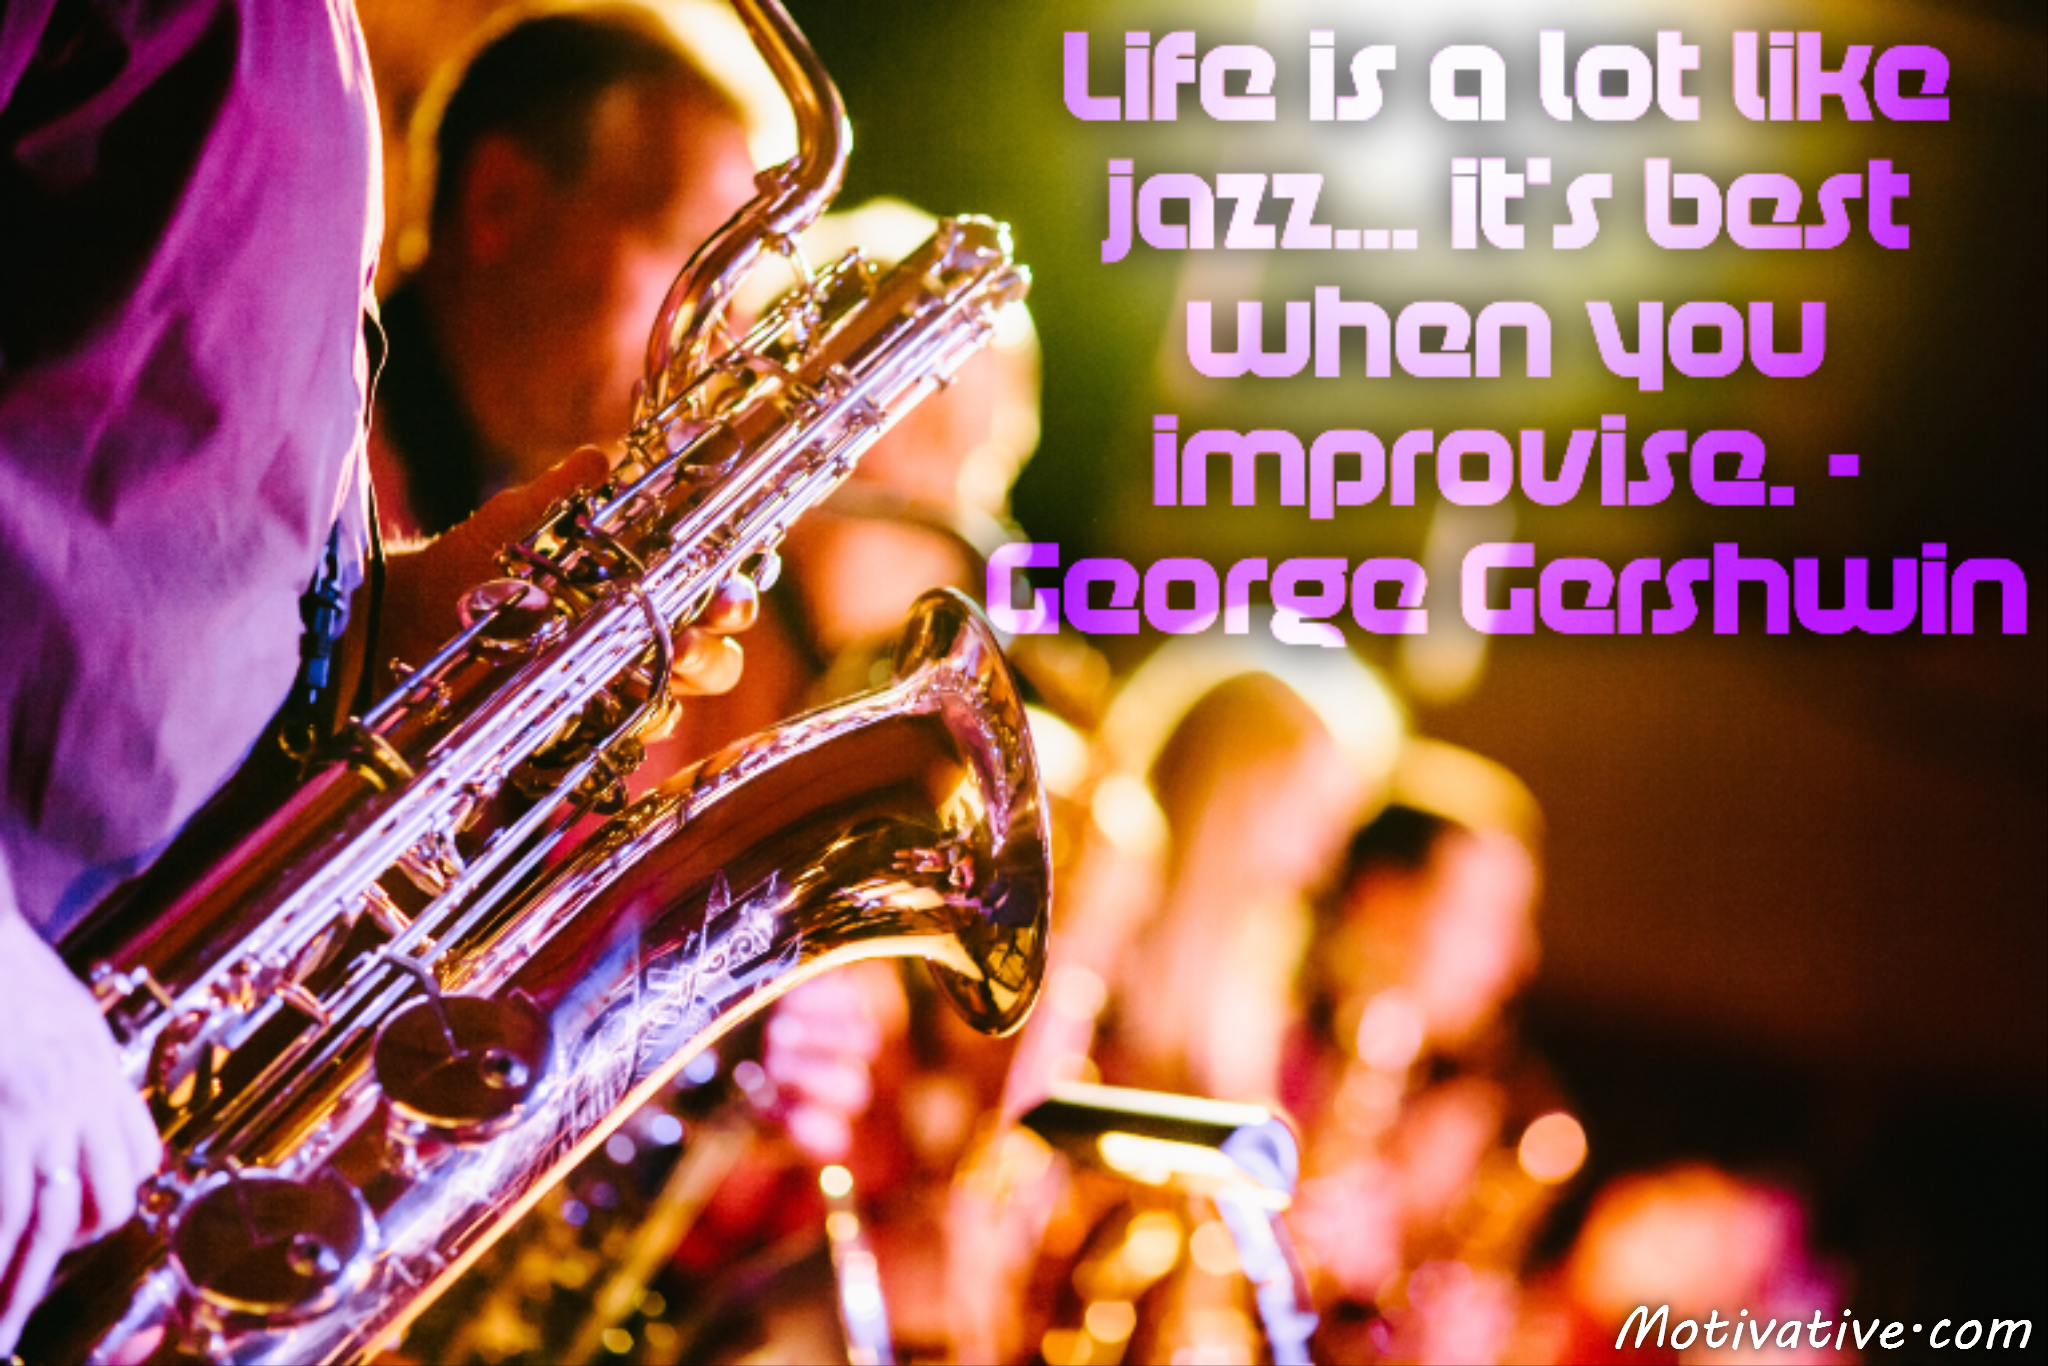 Life is a lot like jazz… it's best when you improvise. – George Gershwin